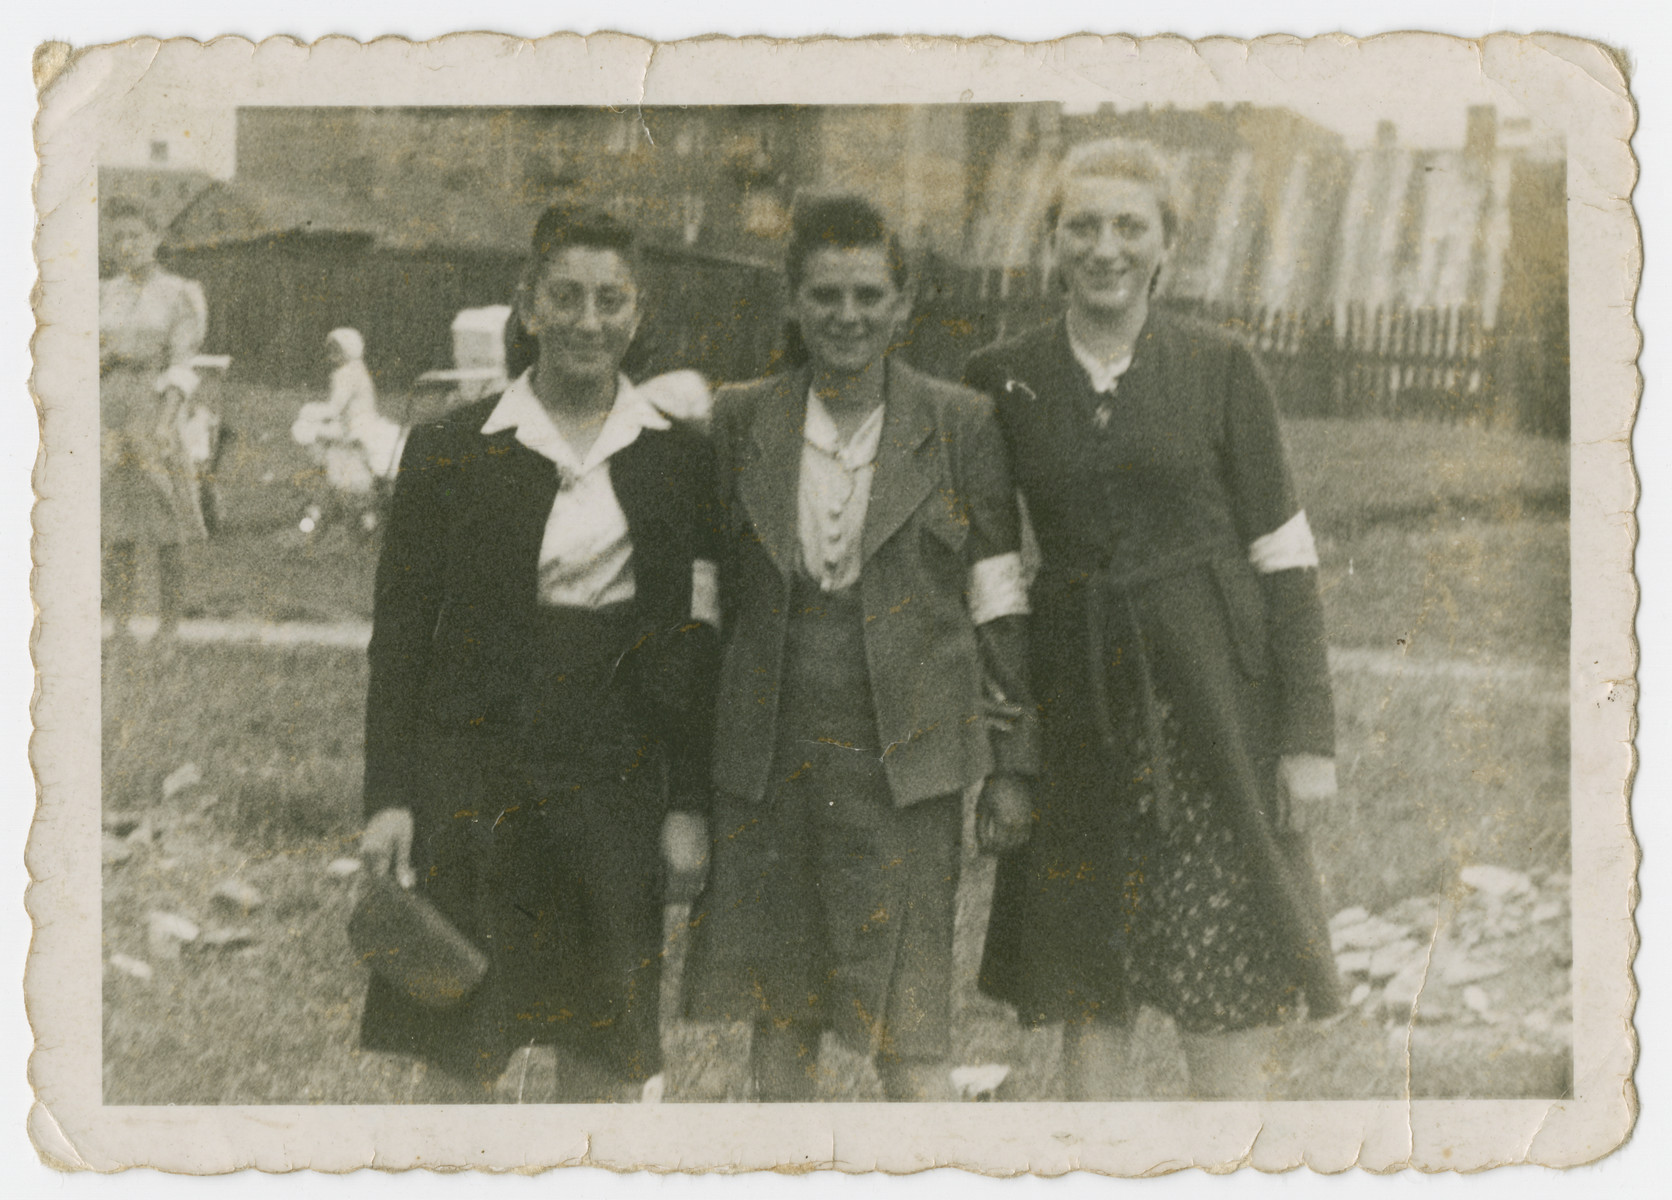 Three young women wearing armbands pose outside in the Sosnowiec ghetto.  Genya Rosenzweig (sister of David) is pictured in the center.